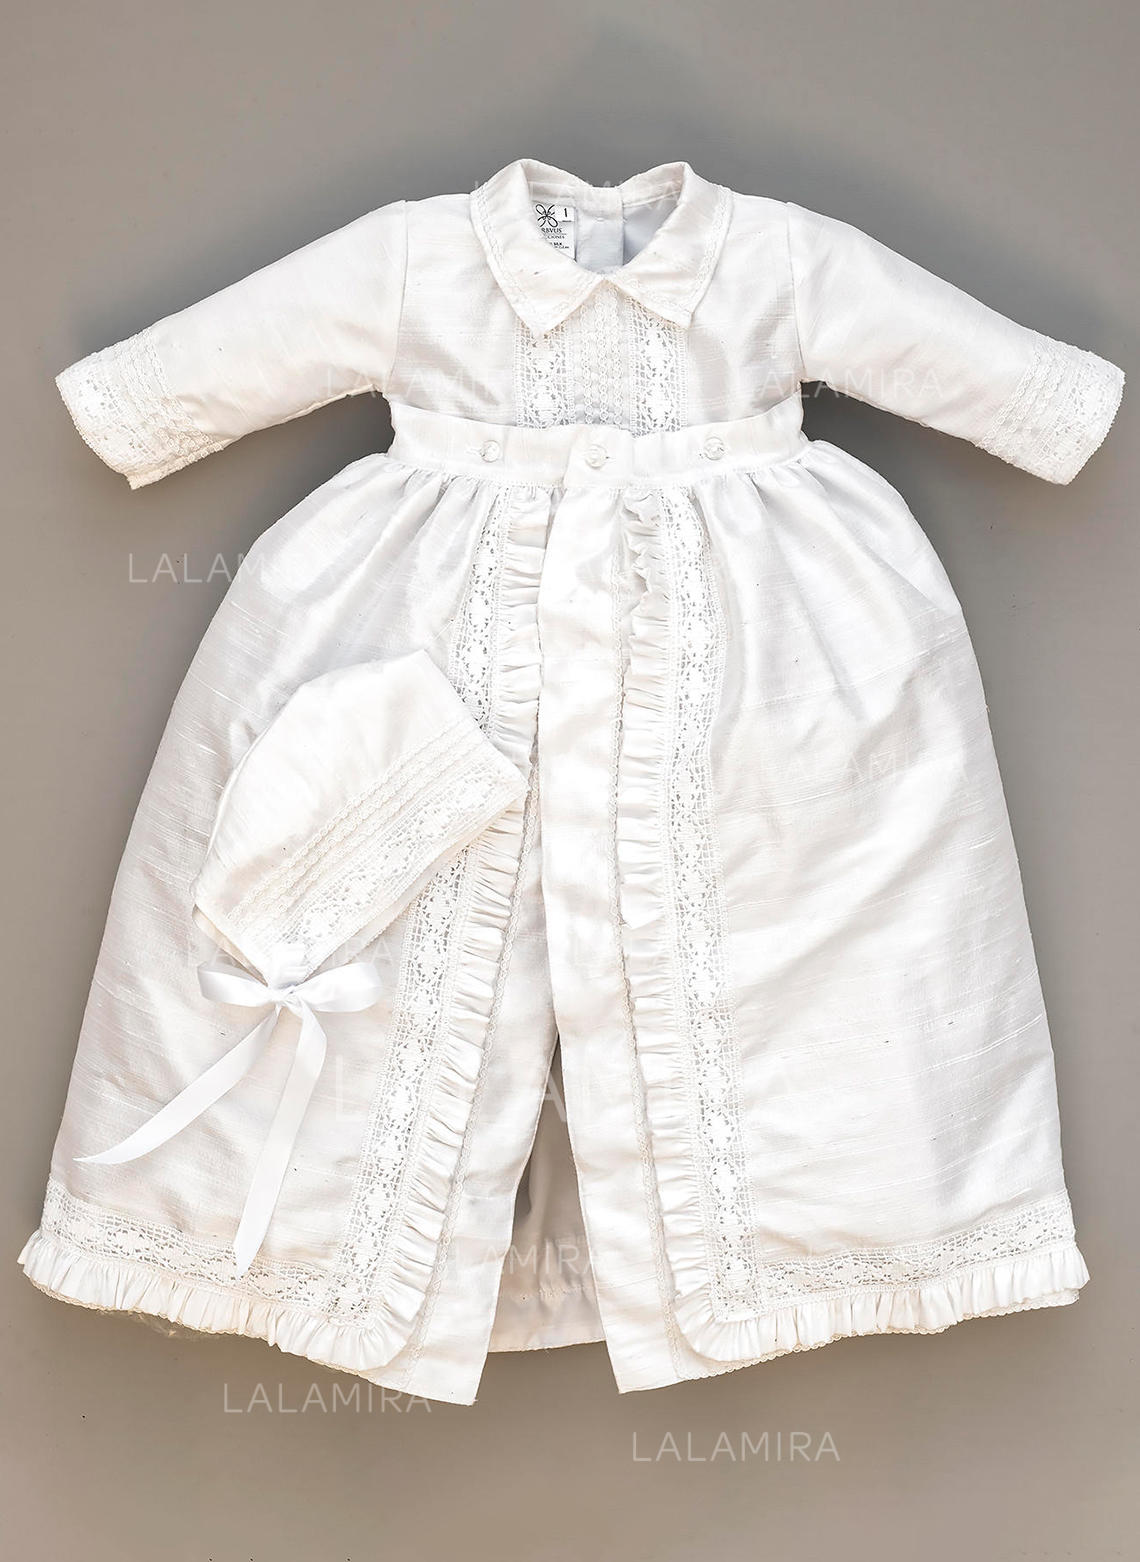 1b2bbe3e6 Satin Peter Pan Collar Lace Baby Boy's Christening Outfits With Long  Sleeves (2001217975). Loading zoom